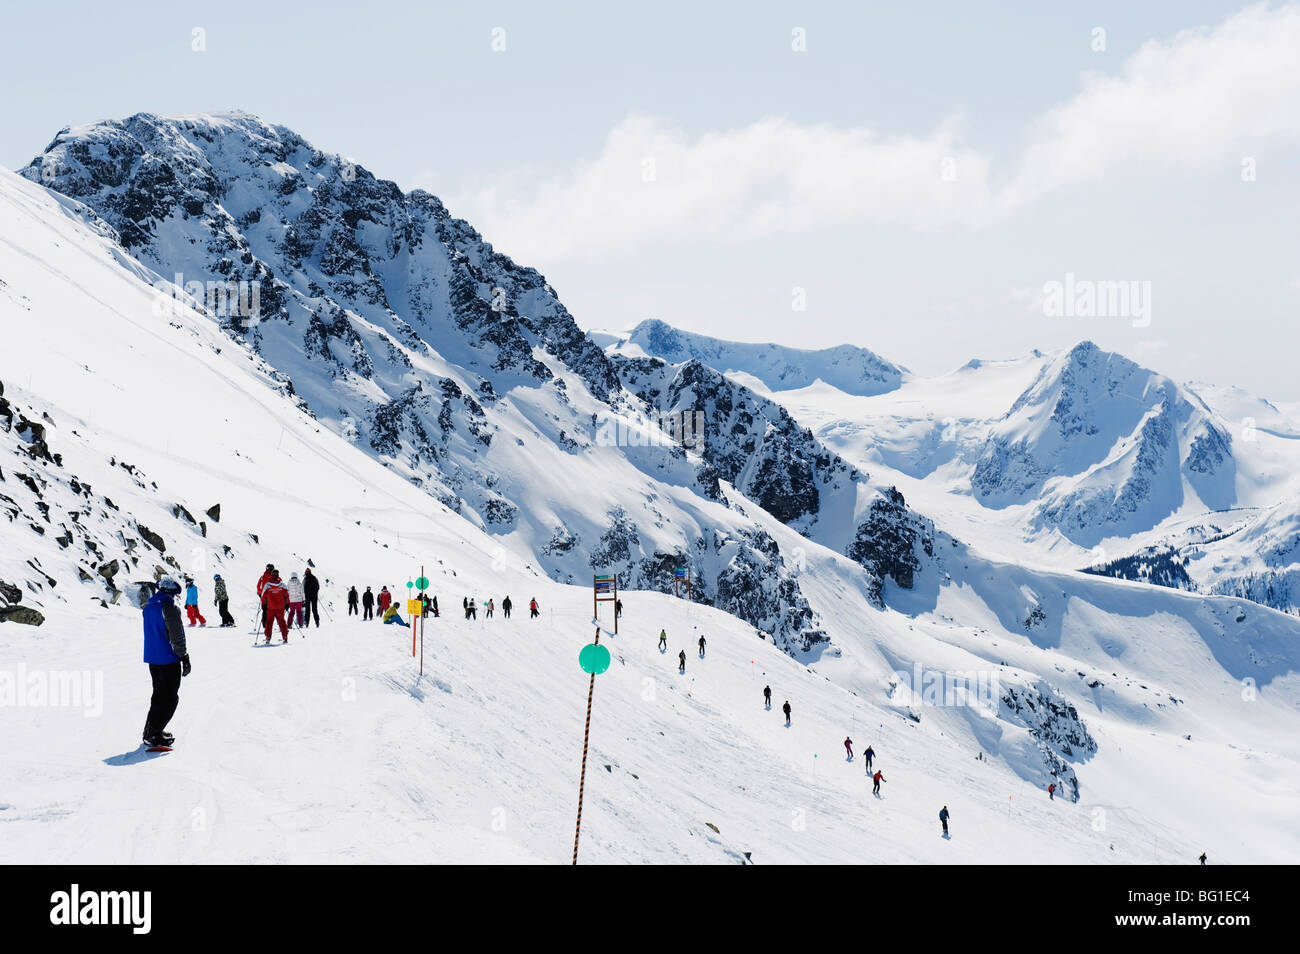 Whistler mountain resort, venue of the 2010 Winter Olympic Games, British Columbia, Canada, North America Stock Photo